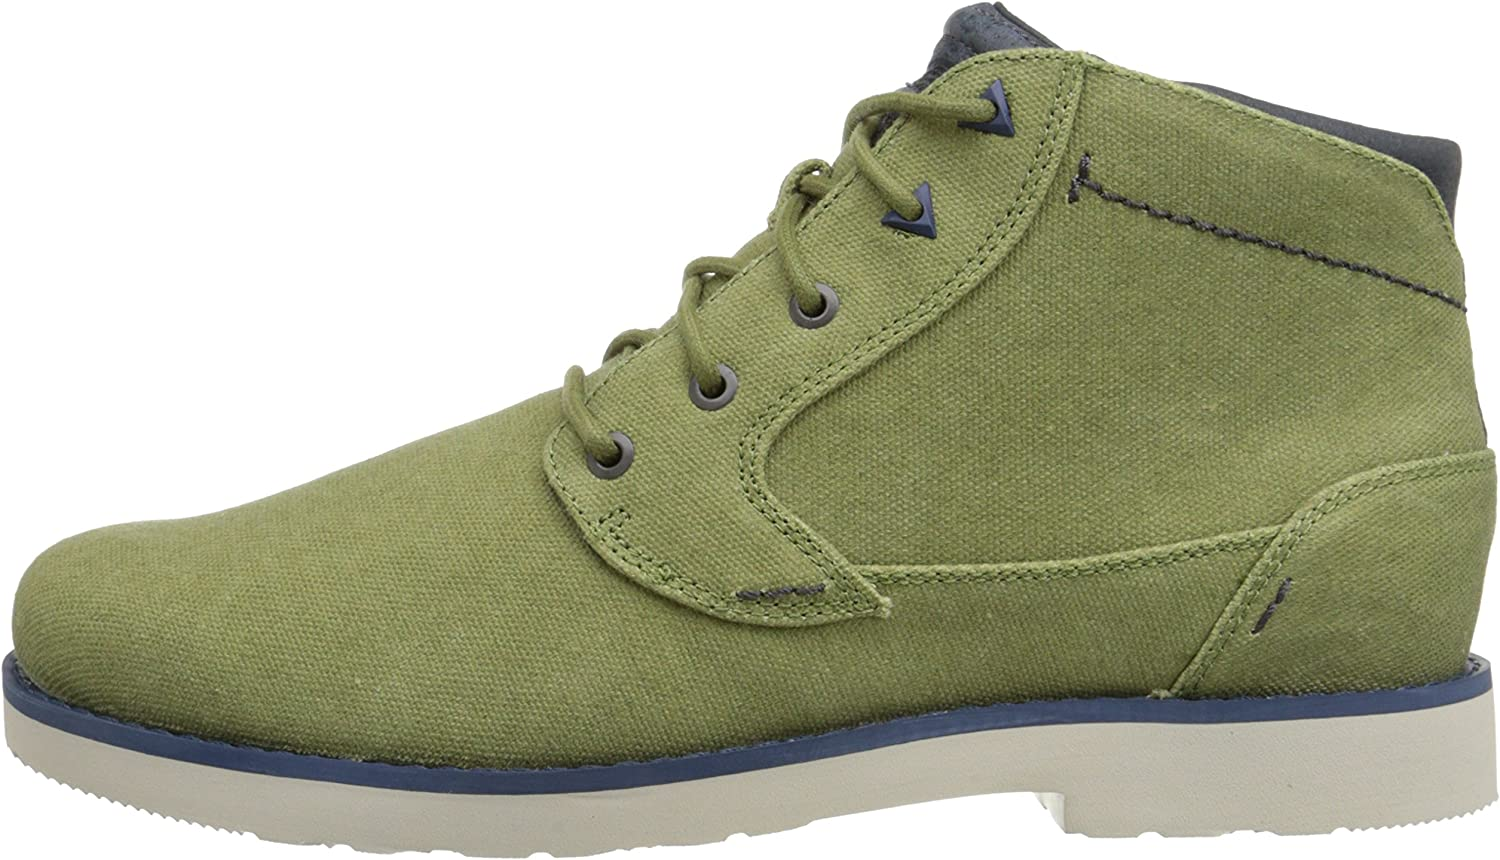 Teva Mens Durban Waxed Canvas Chukka Boot Shoes Avocado US 9.5